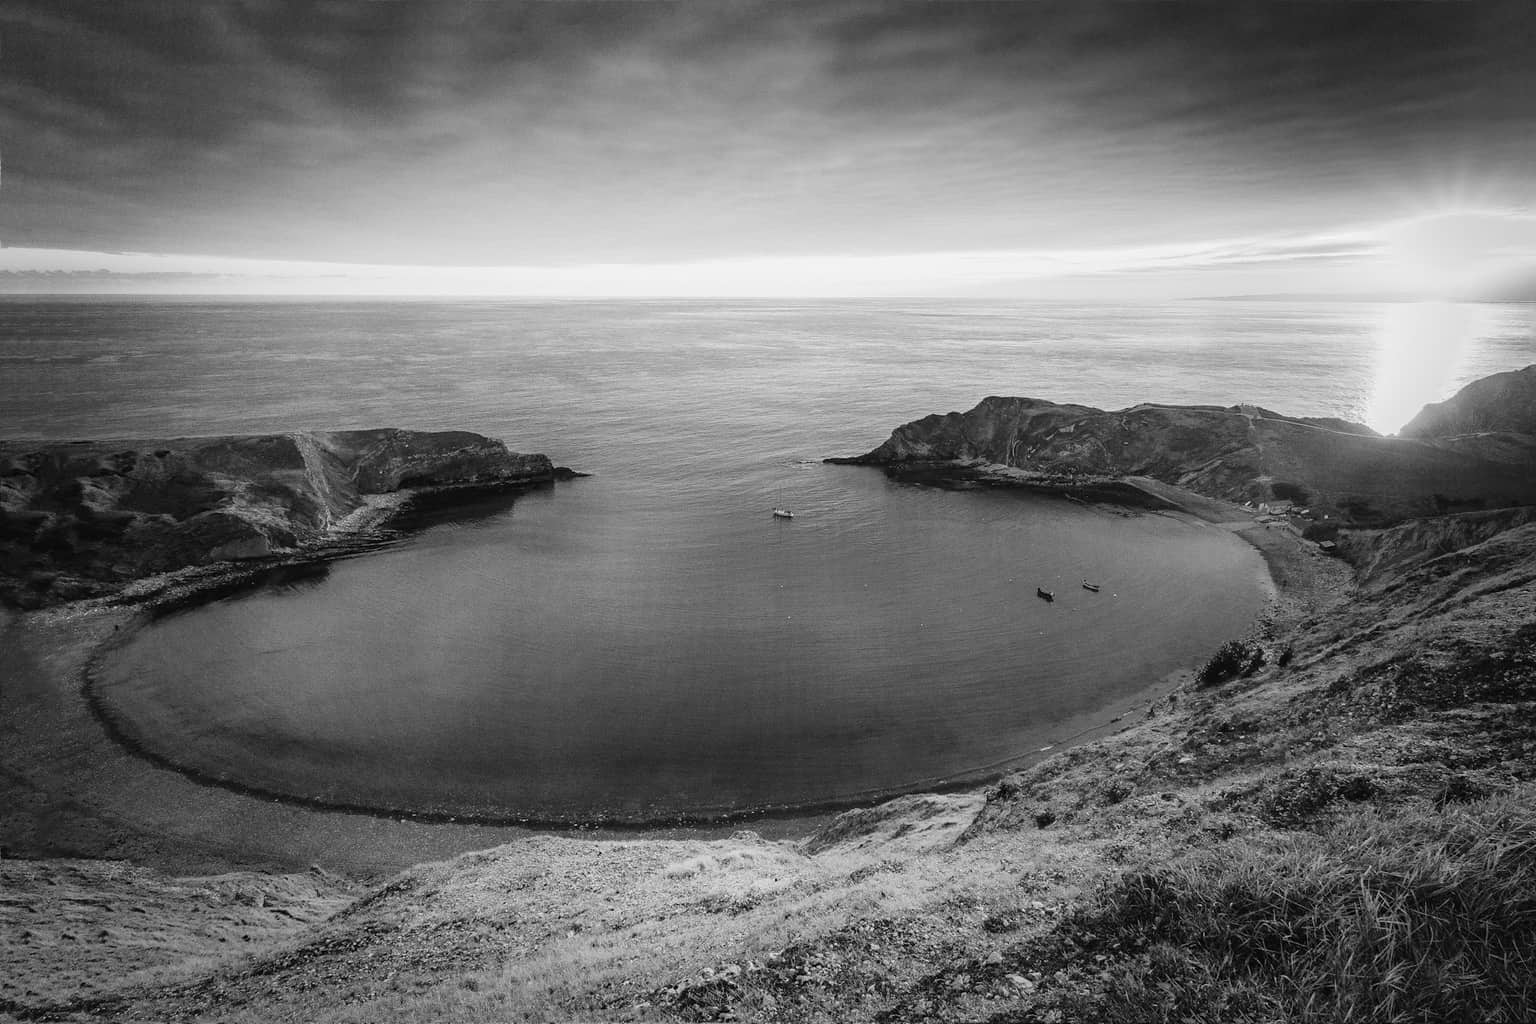 Lulworth Cove - black and white landscape photography in Dorset by Rick McEvoy